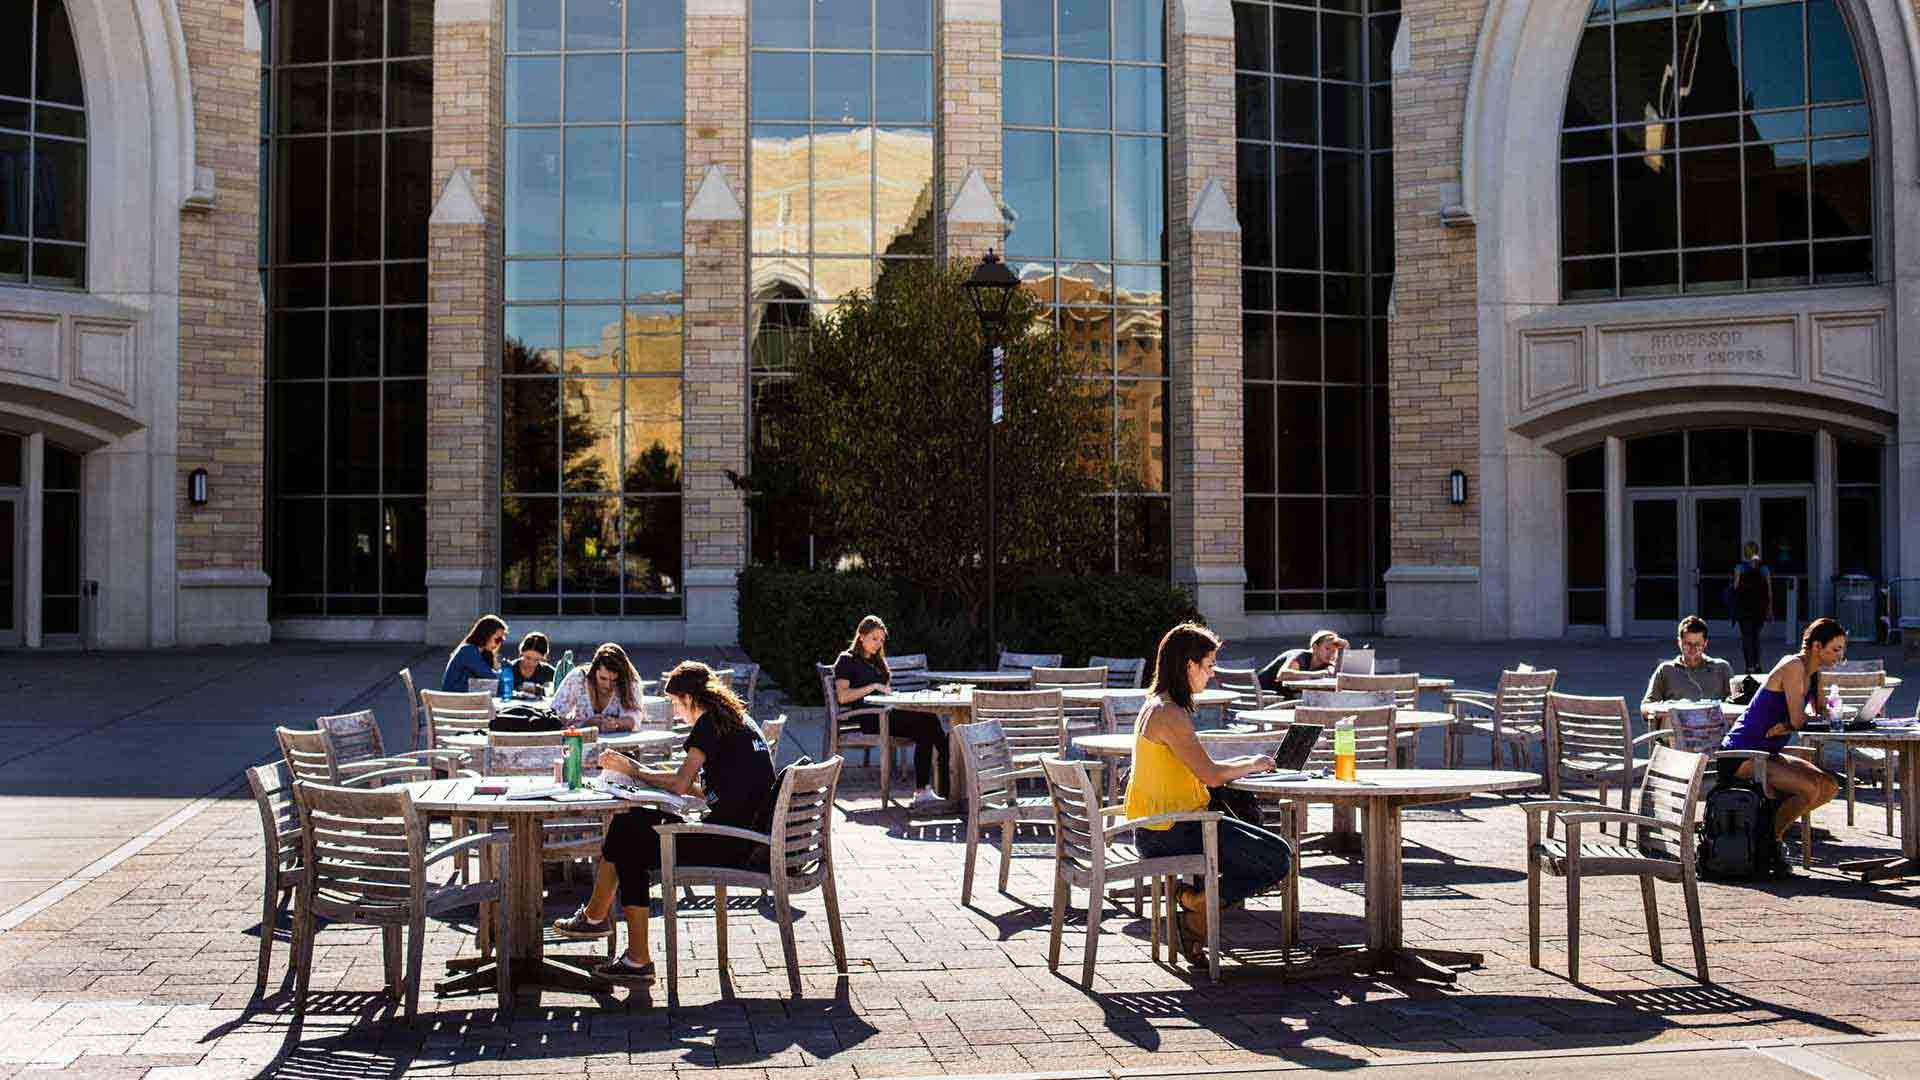 Students study at tables outside of Anderson Hall in the autumn.